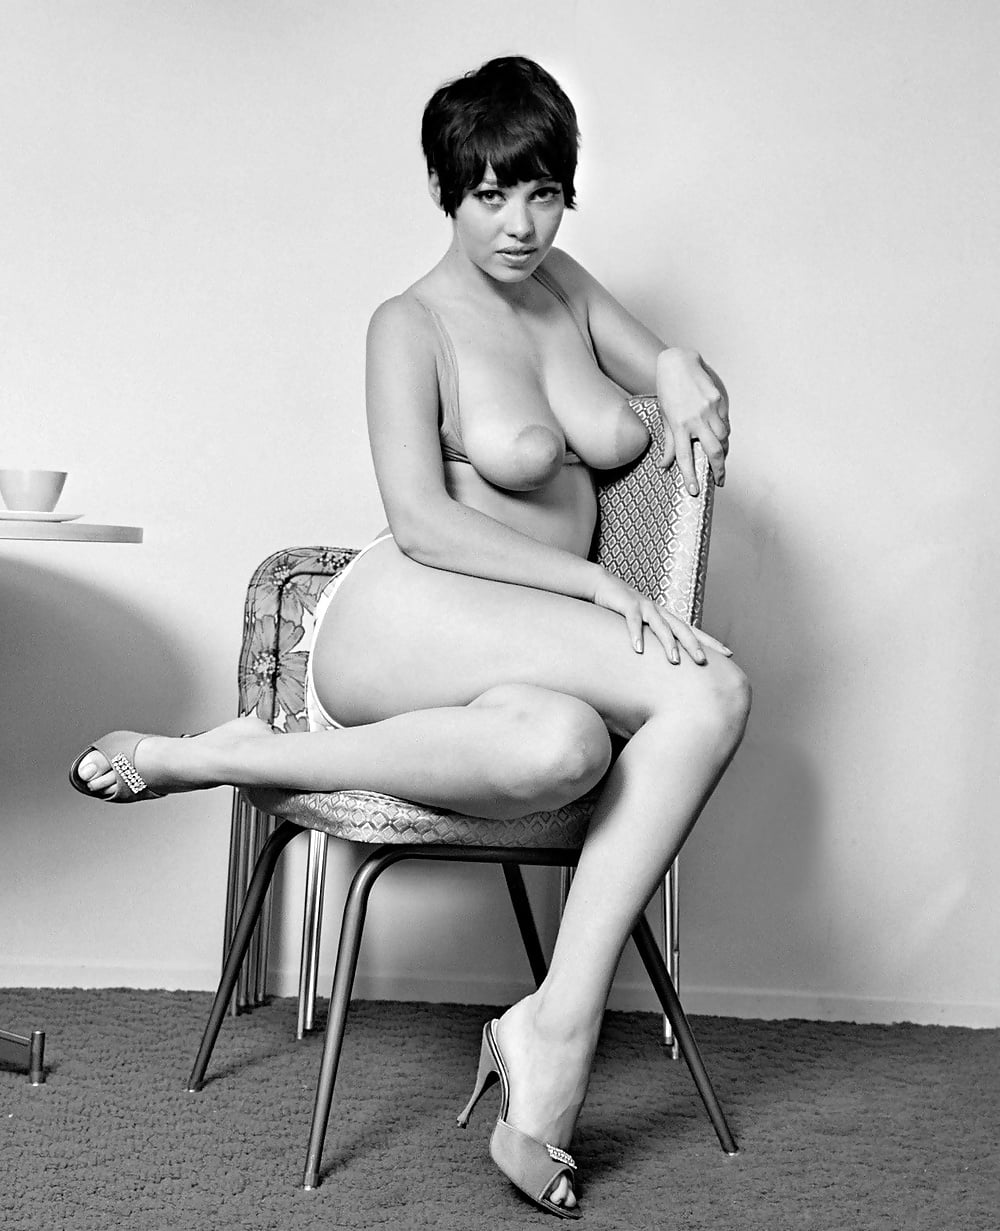 big-tit-vintage-women-naked-black-stars